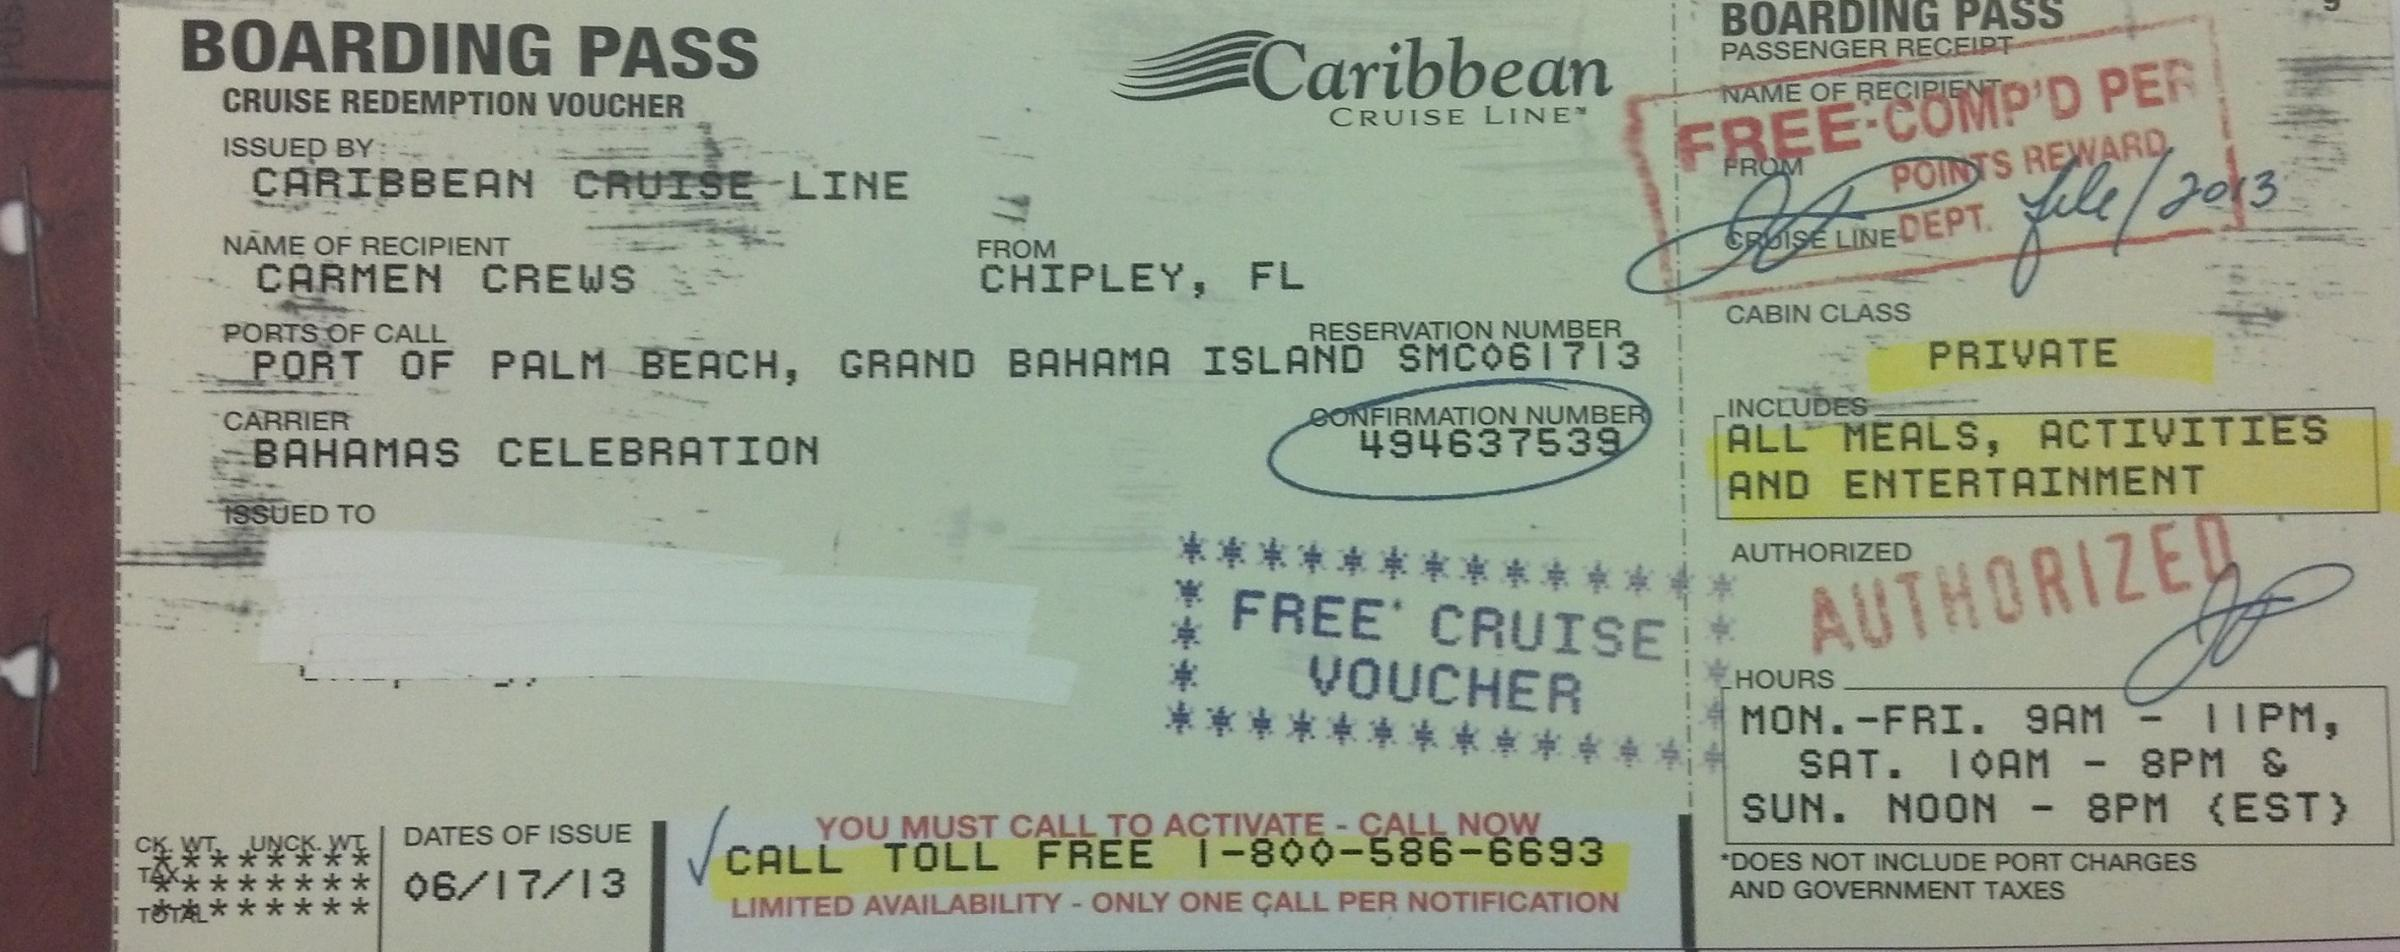 Cruise Scam The Latest To Plague The Bay County Area Wfsu